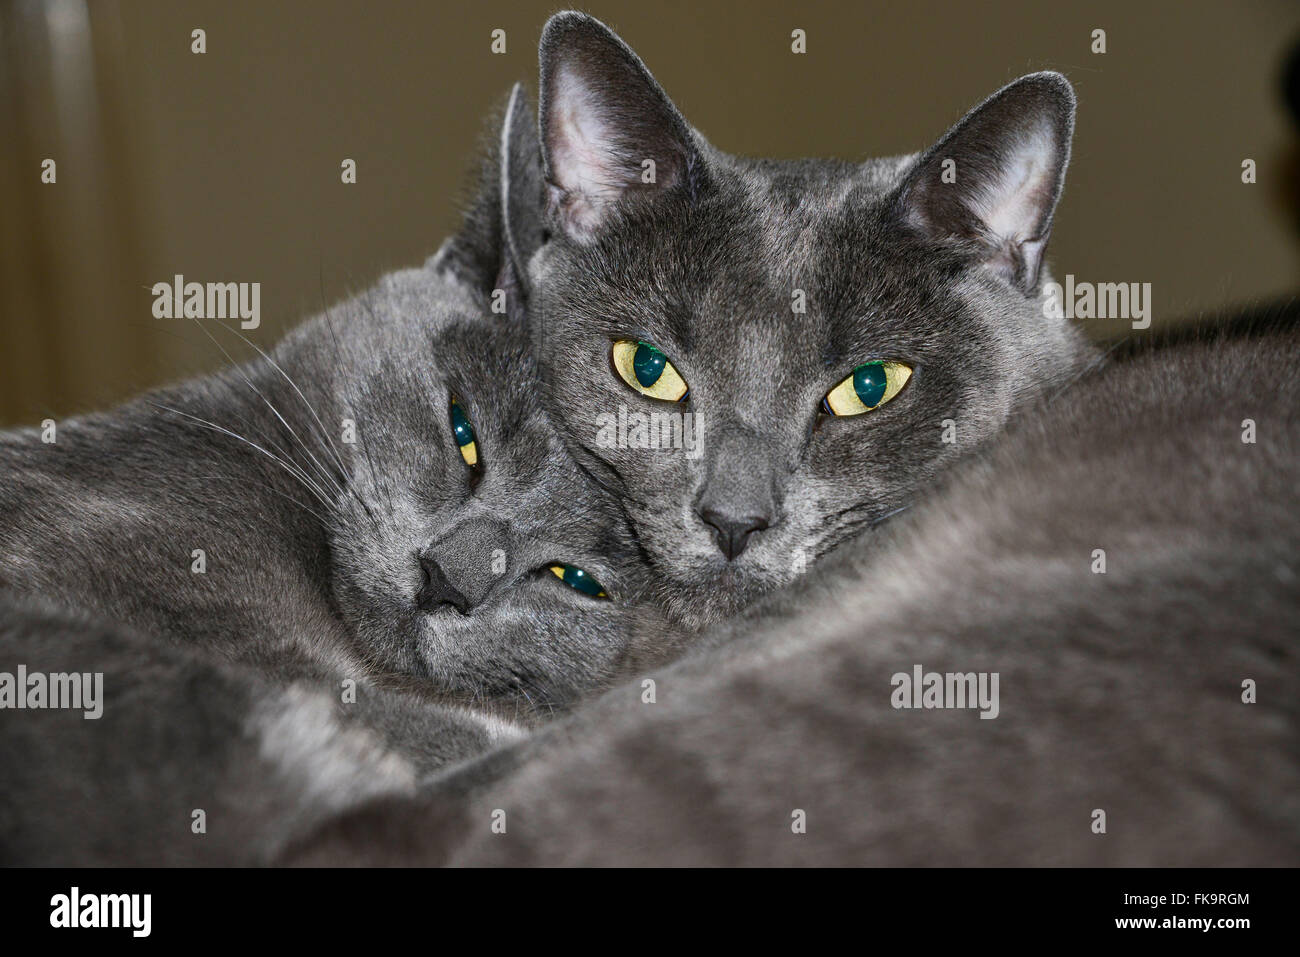 Twin cats - Stock Image